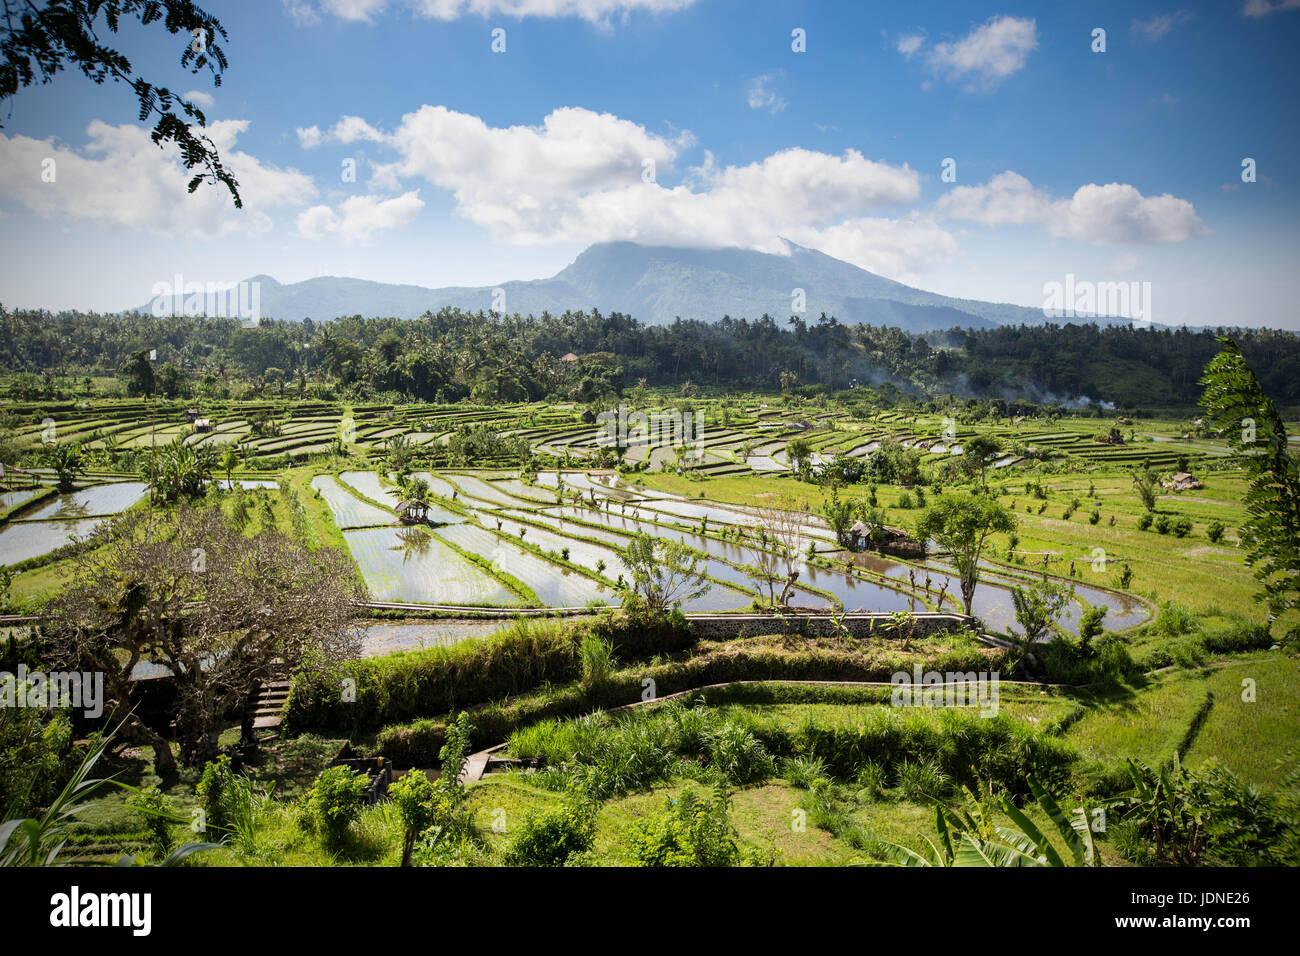 Rice Paddy Terraces in Northern Bali Near Ubud with Mount Agung in Background - Stock Image